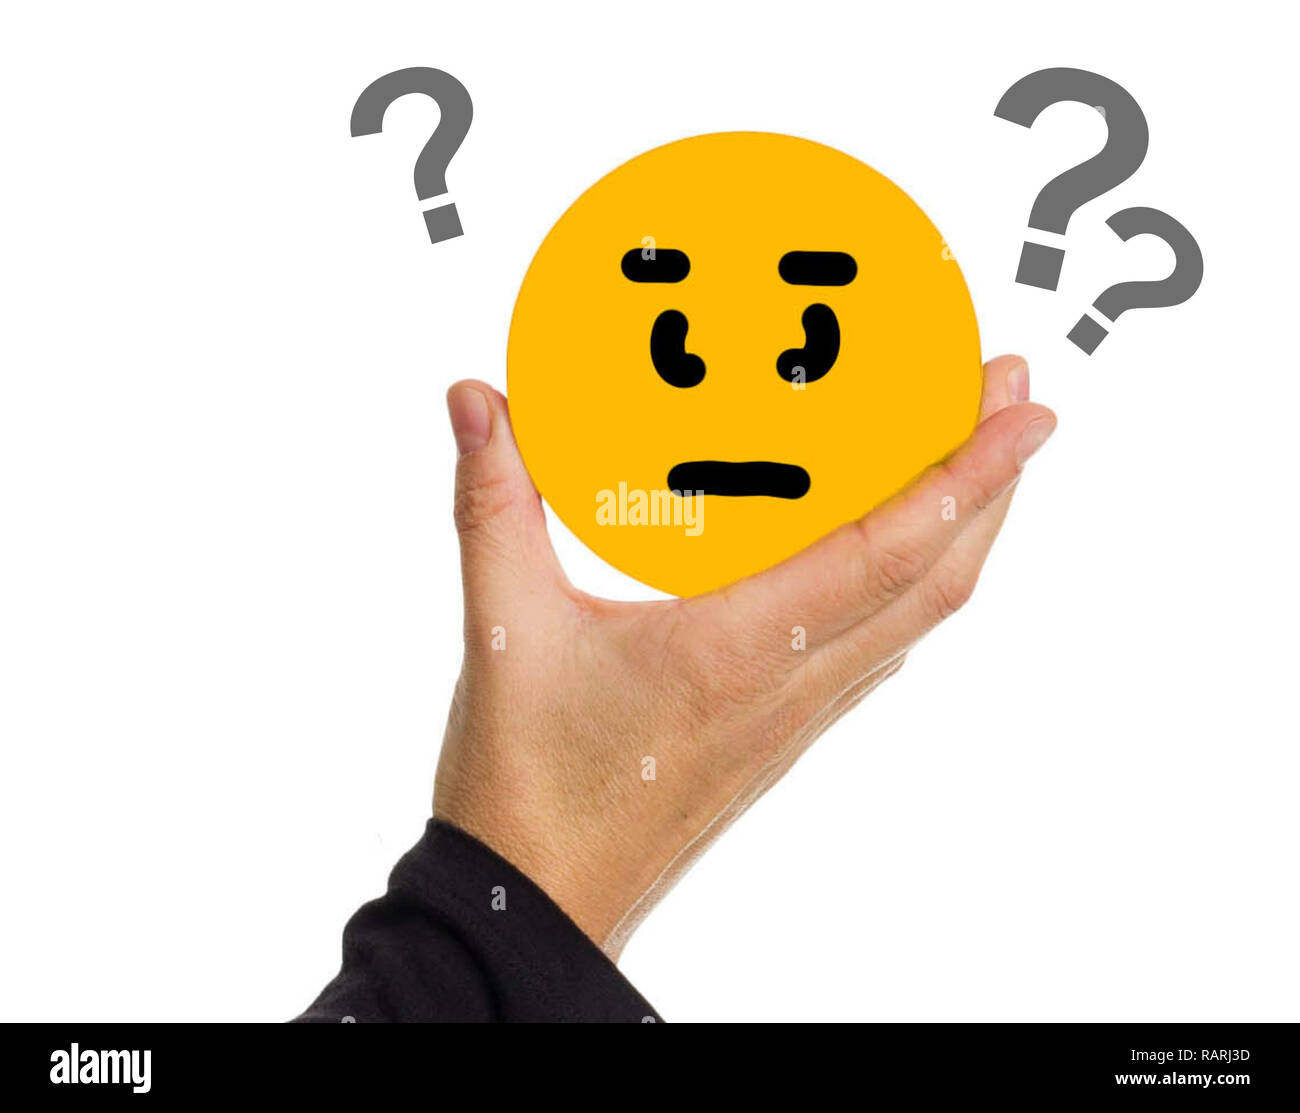 Hand holding a yellow circle with face expression question_illustration. - Stock Image